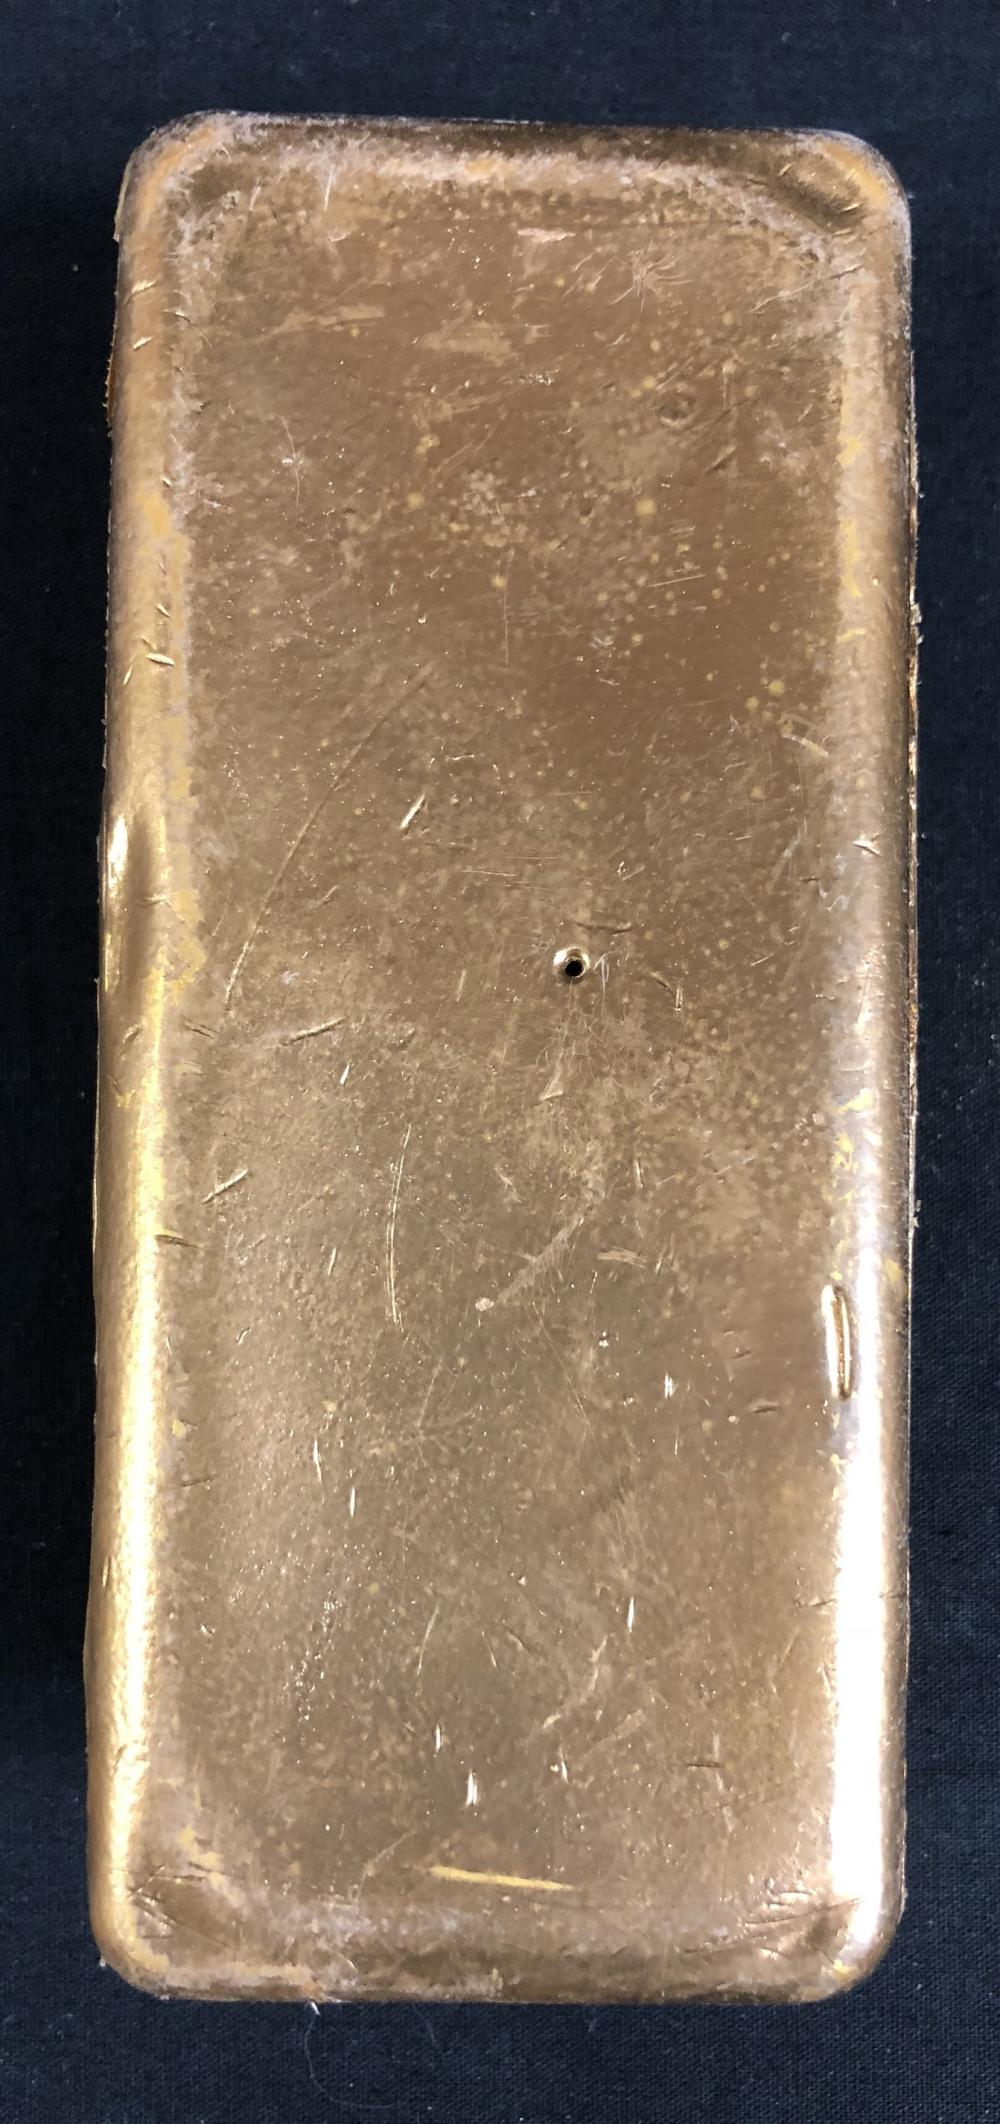 Lot 105: Harry Potter and the Half-Blood Prince (2009) - Gringotts Bank Gold Bar (Small)